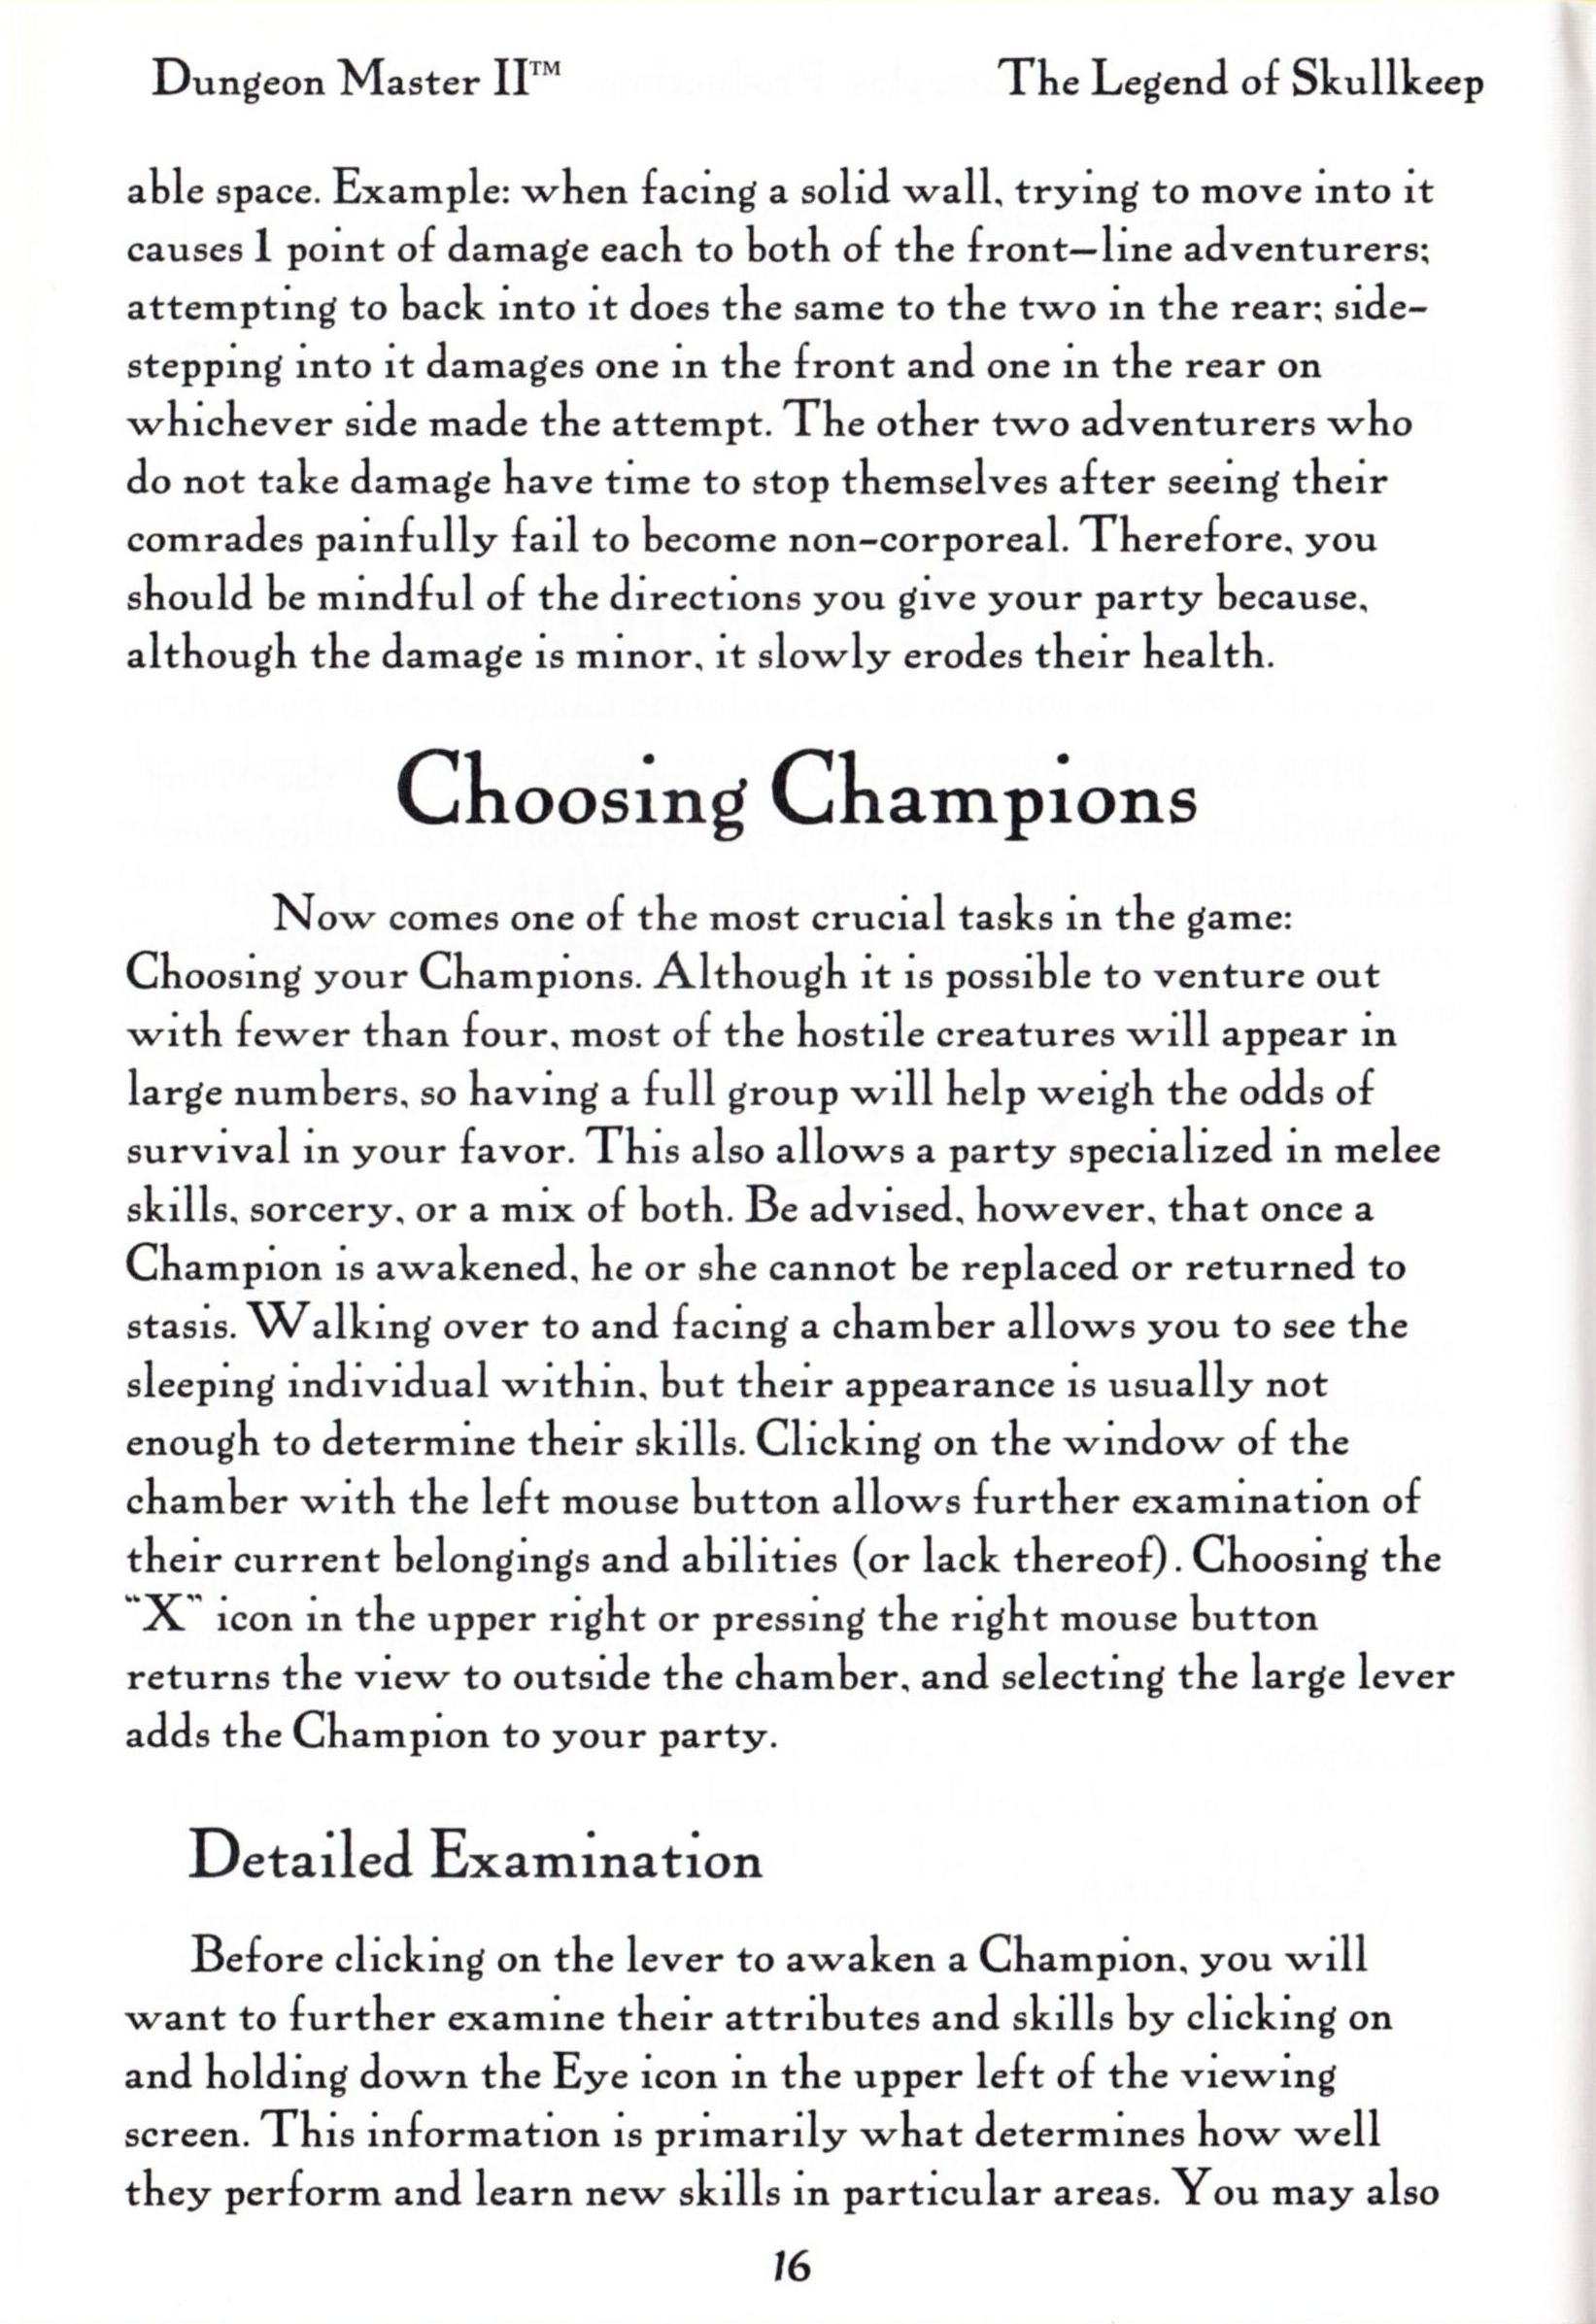 Game - Dungeon Master II - US - PC - Big Box - Manual - Page 018 - Scan